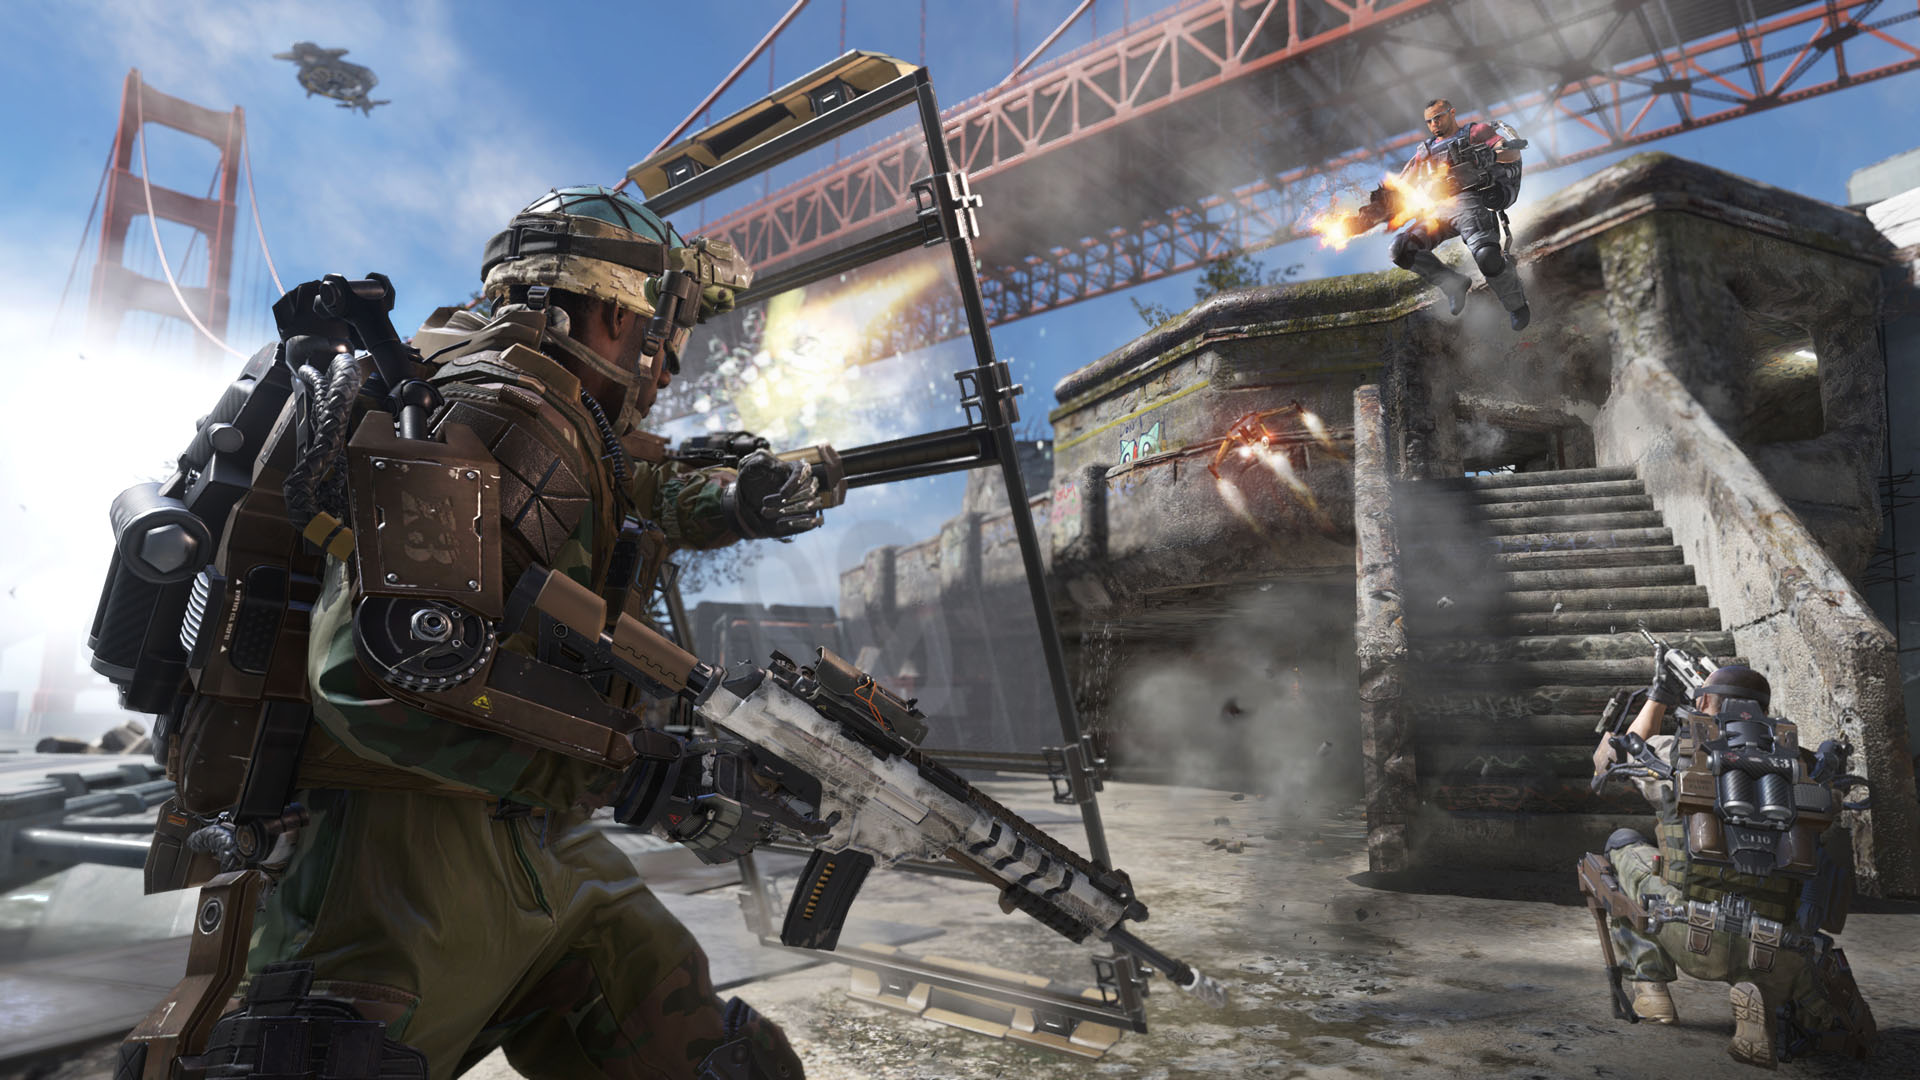 Call of Duty isn't a first-person shooter, it's something better